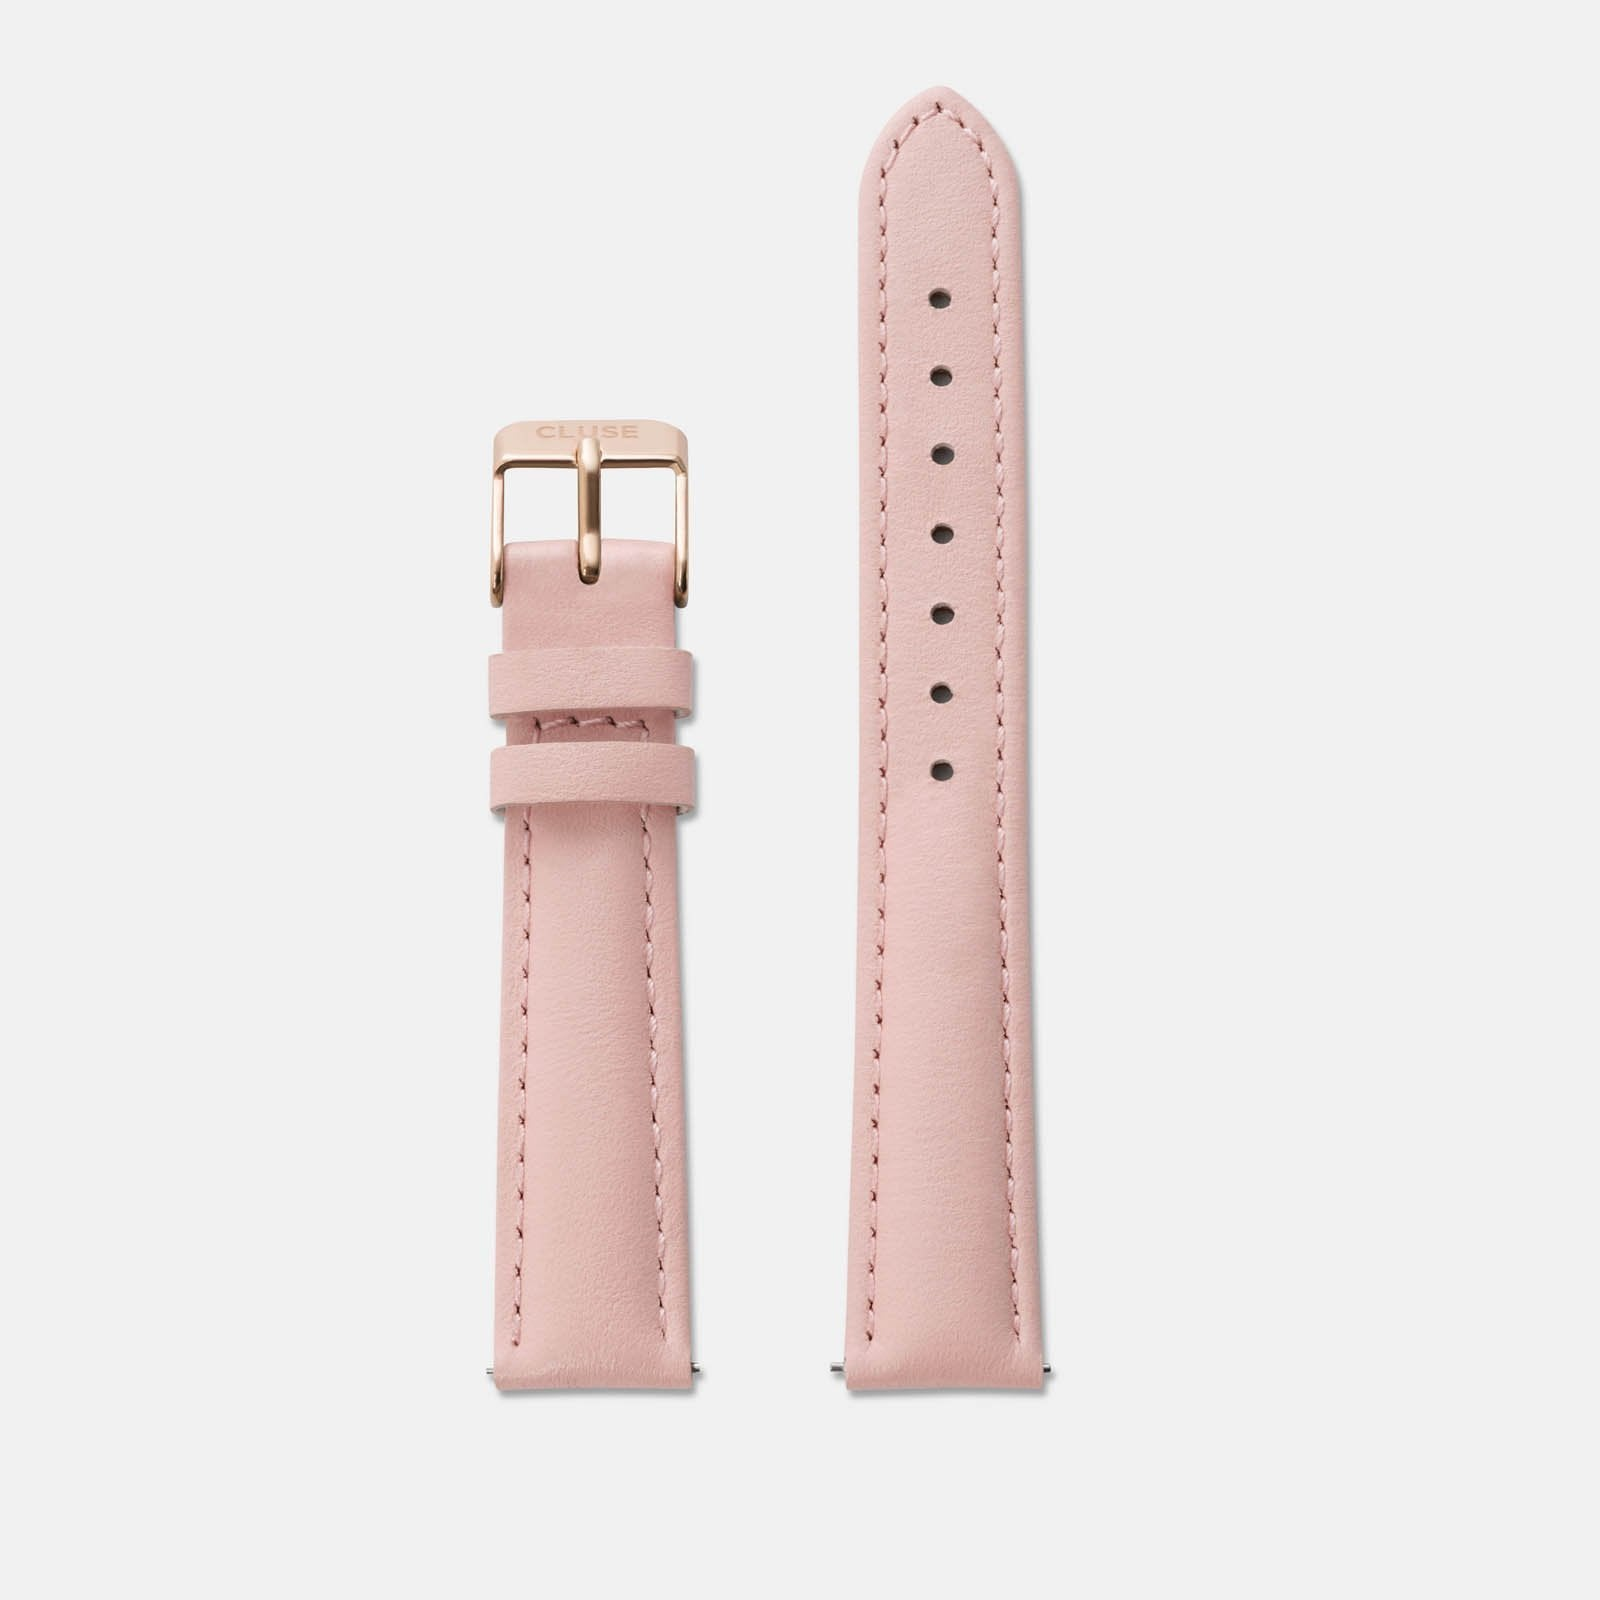 Strap 16 mm Leather Pink/Rose Gold CS1408101026 - Correa de reloj